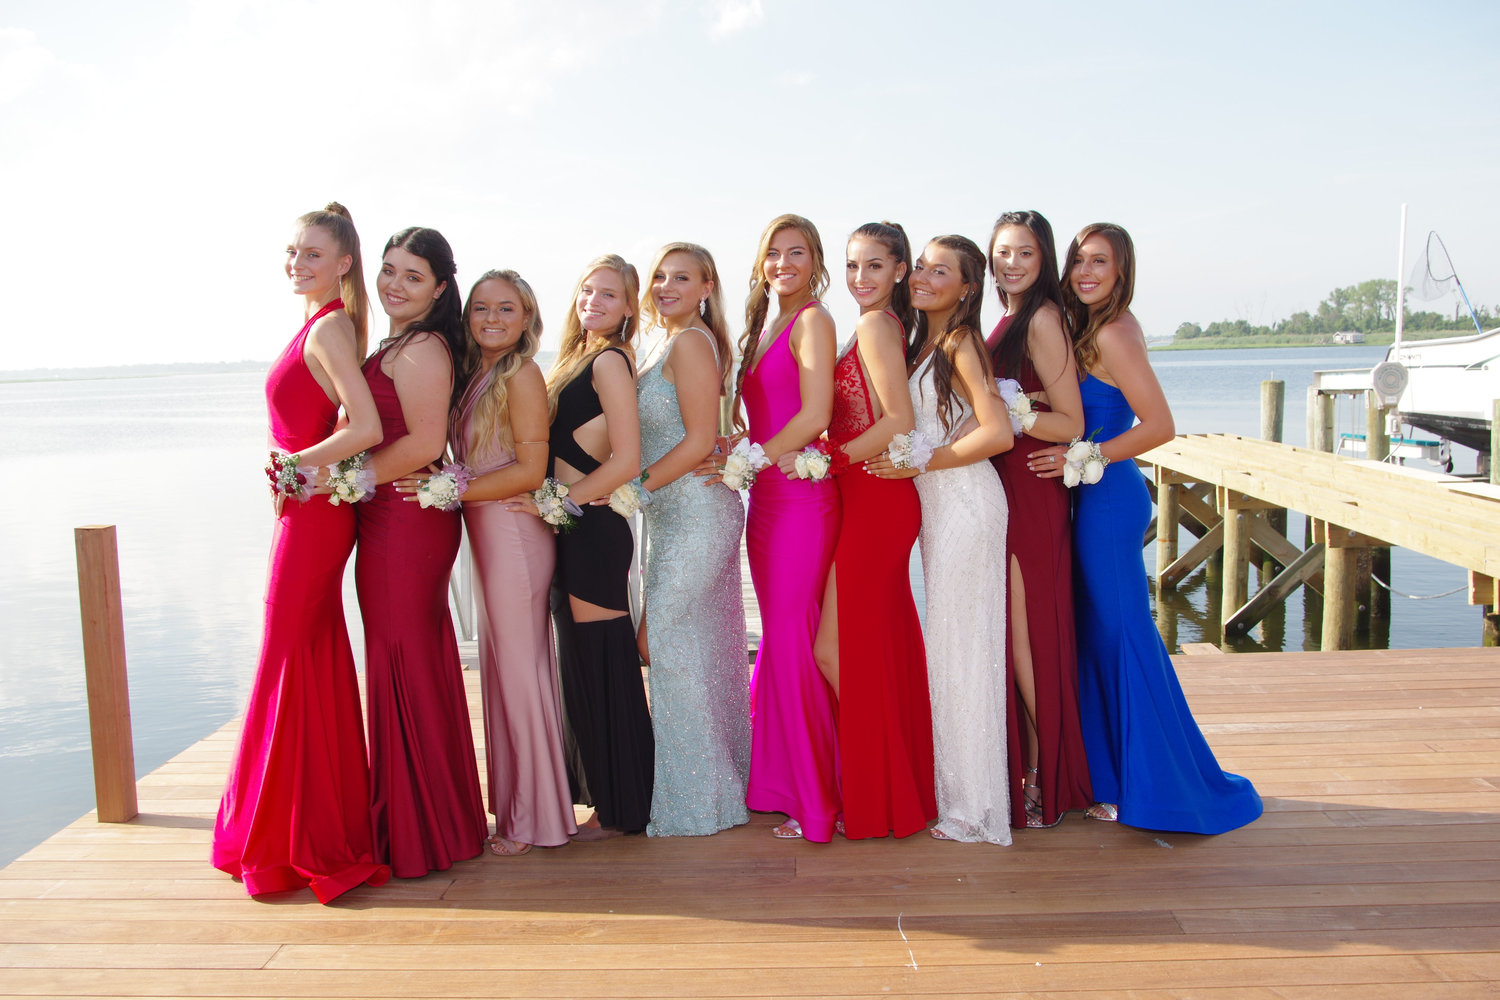 Mia Radin, far left; Nicole Grandinetti, Sammi Eduardo, Brianna Moore, Kate Salvato, Angelica Gonzalez, Fionna Rafferty, Julz Green, Kendall Parker and Jillian Canner.